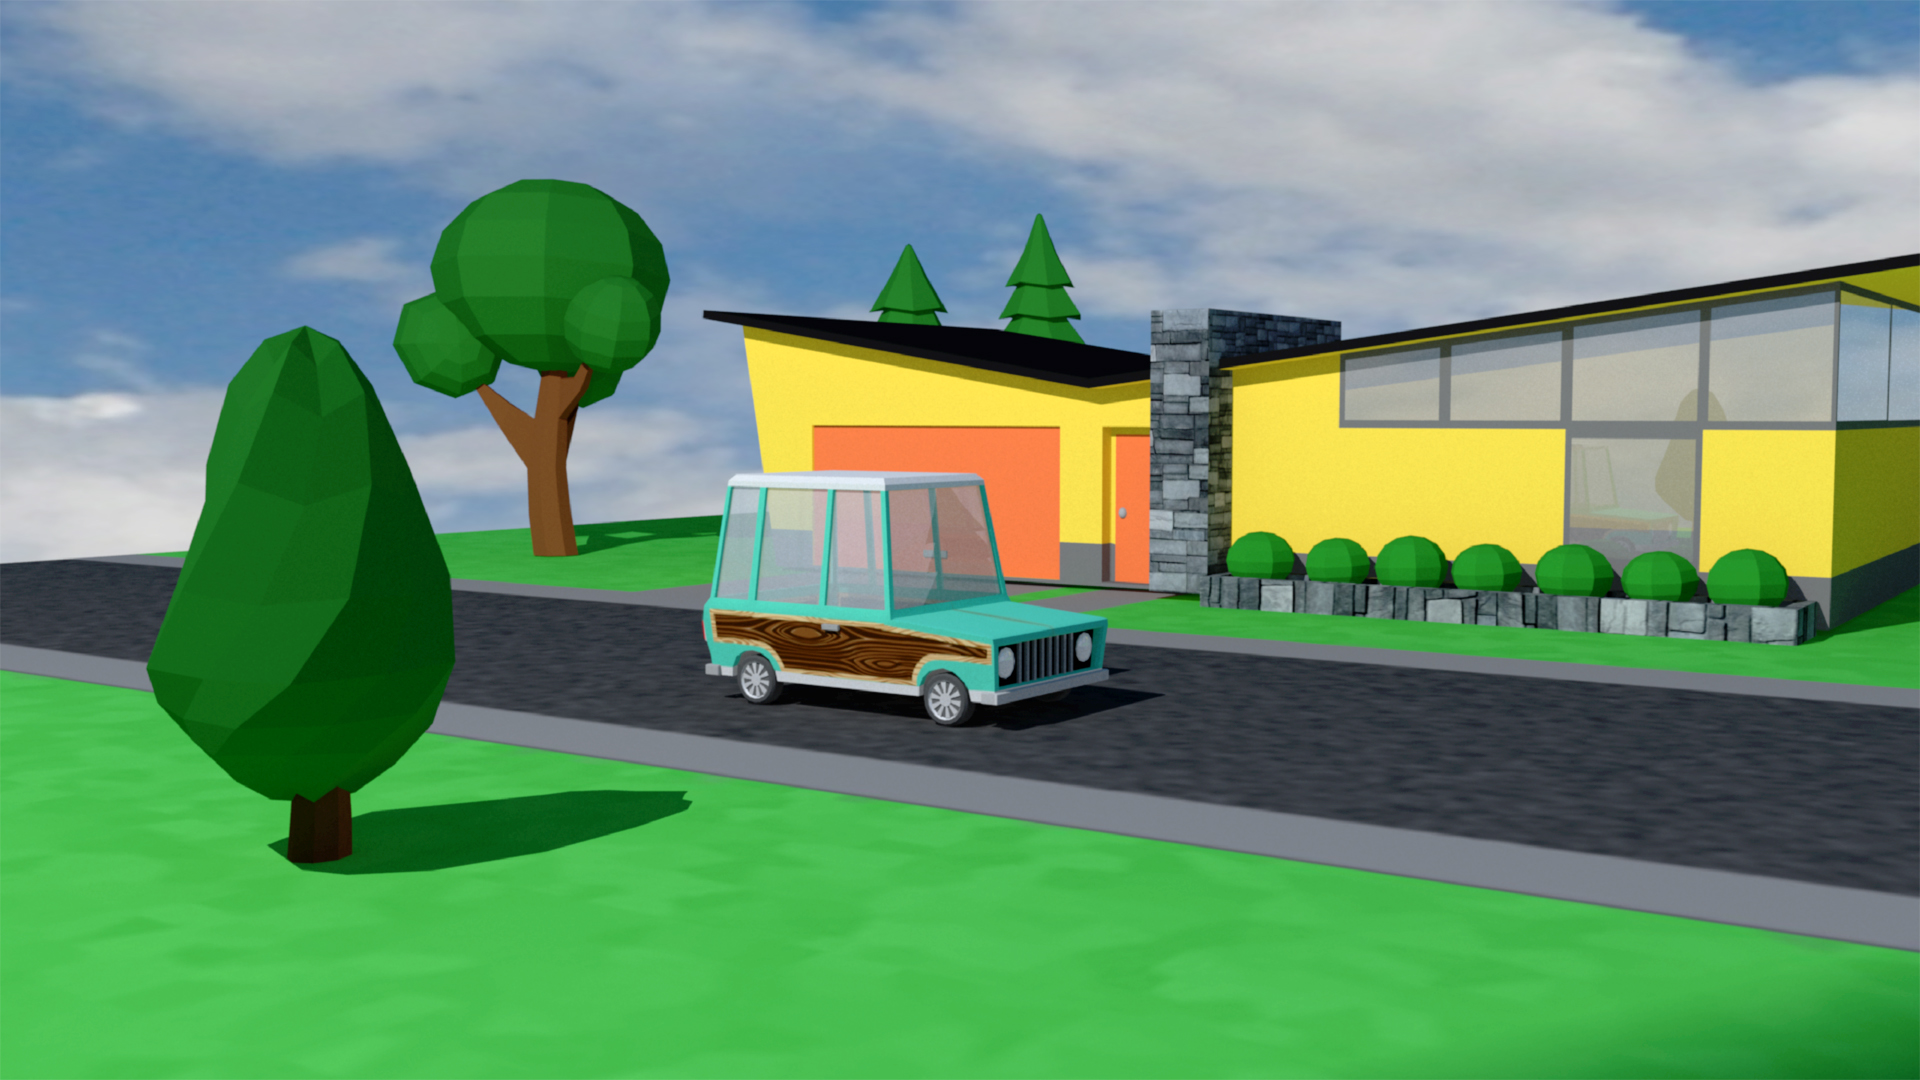 maya software free download full version for animation for windows 7